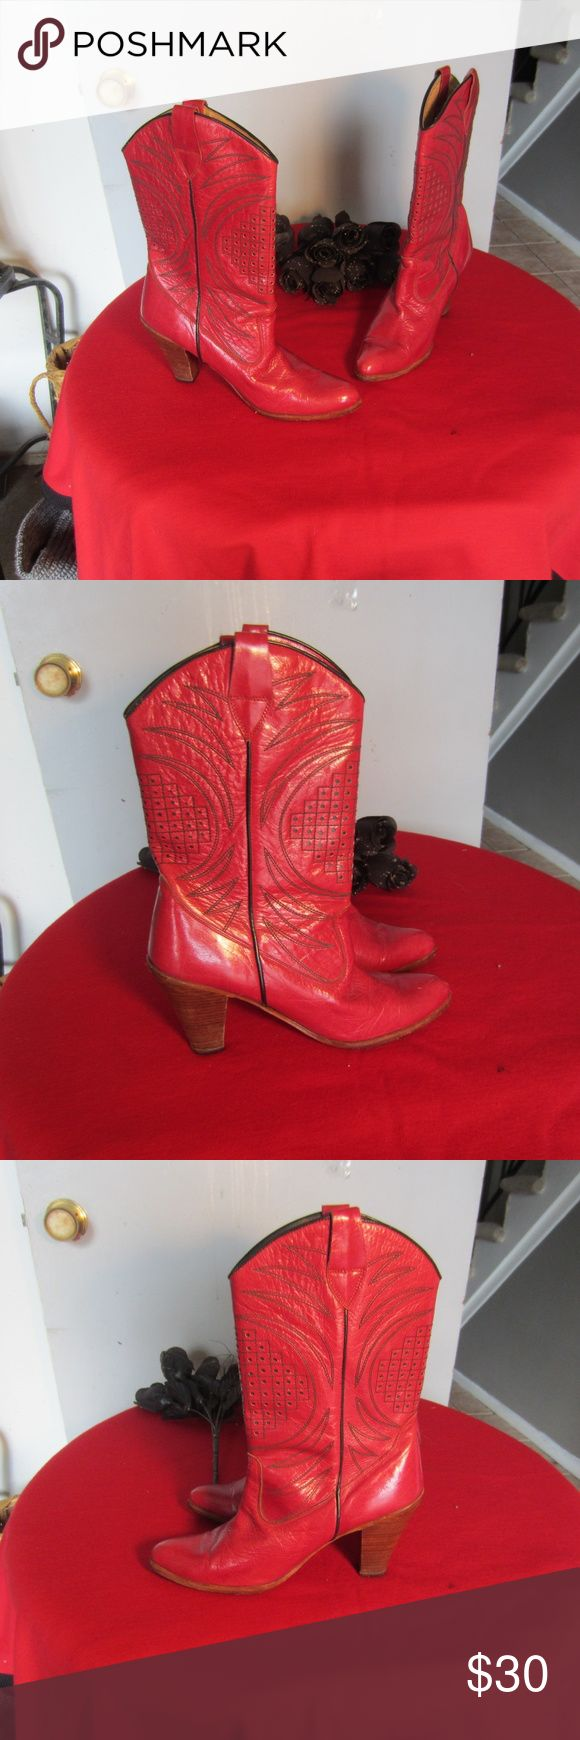 SRO Women,s Red Leather Western Style Boots Sz. 8 Up for sale are these lovely preowned SRO Women,s Red Leather Western Style Boots Sz. 8  . In Very good condition.  Measurements 8  Widest across sole 3&1/4 Inches  Calf opening laying flat 6 inches  Top to bottom 12 inches  Heel height 3&1/2 inches. SRO Shoes Heeled Boots